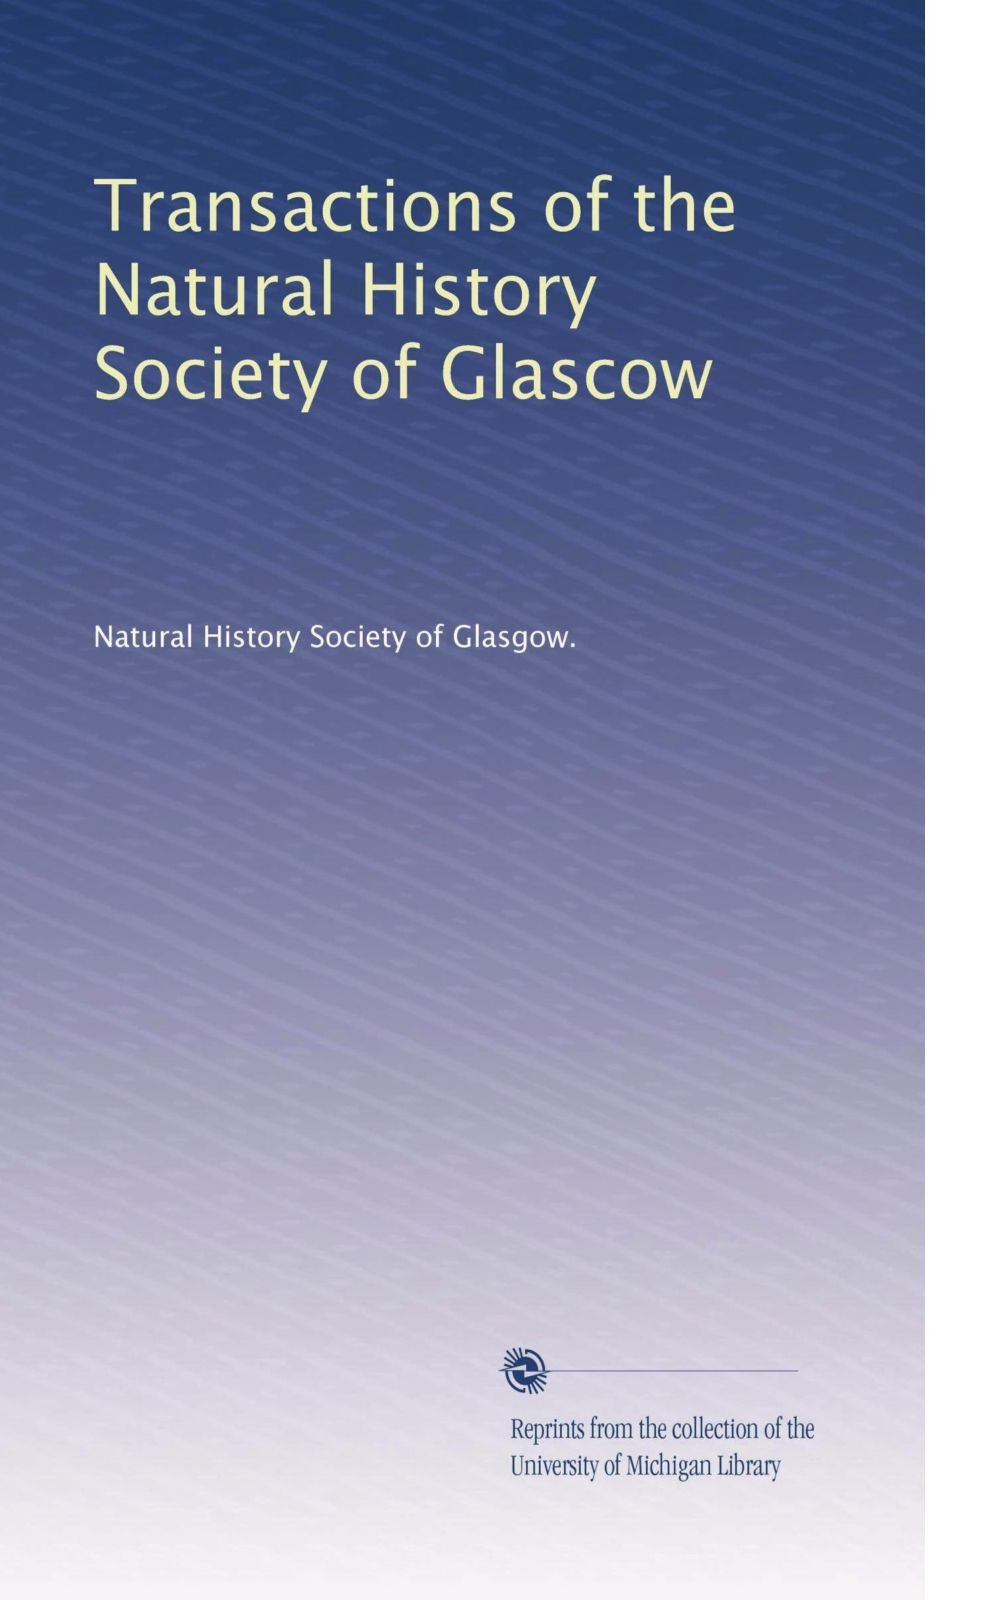 Download Transactions of the Natural History Society of Glascow (Volume 8) PDF